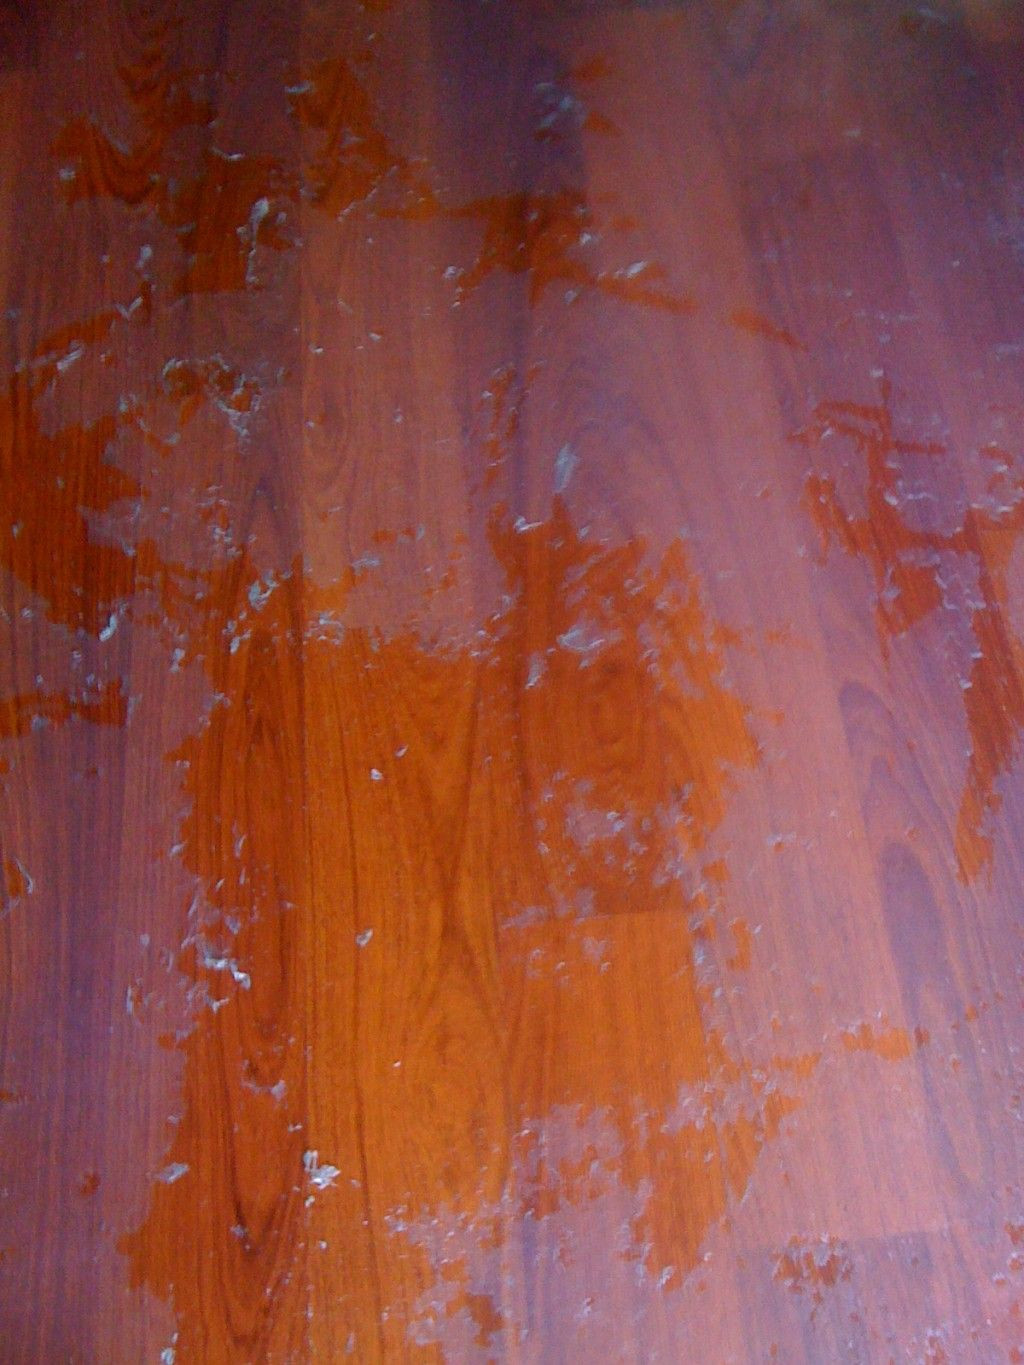 Diy Sand and Stain Hardwood Floors Of How to Remove Wax and Oil soap Cleaners From Wood Floors Recipes Regarding How to Remove Oily or Wax Build Up From Cleaning or Polishing solutions From Wood Floors